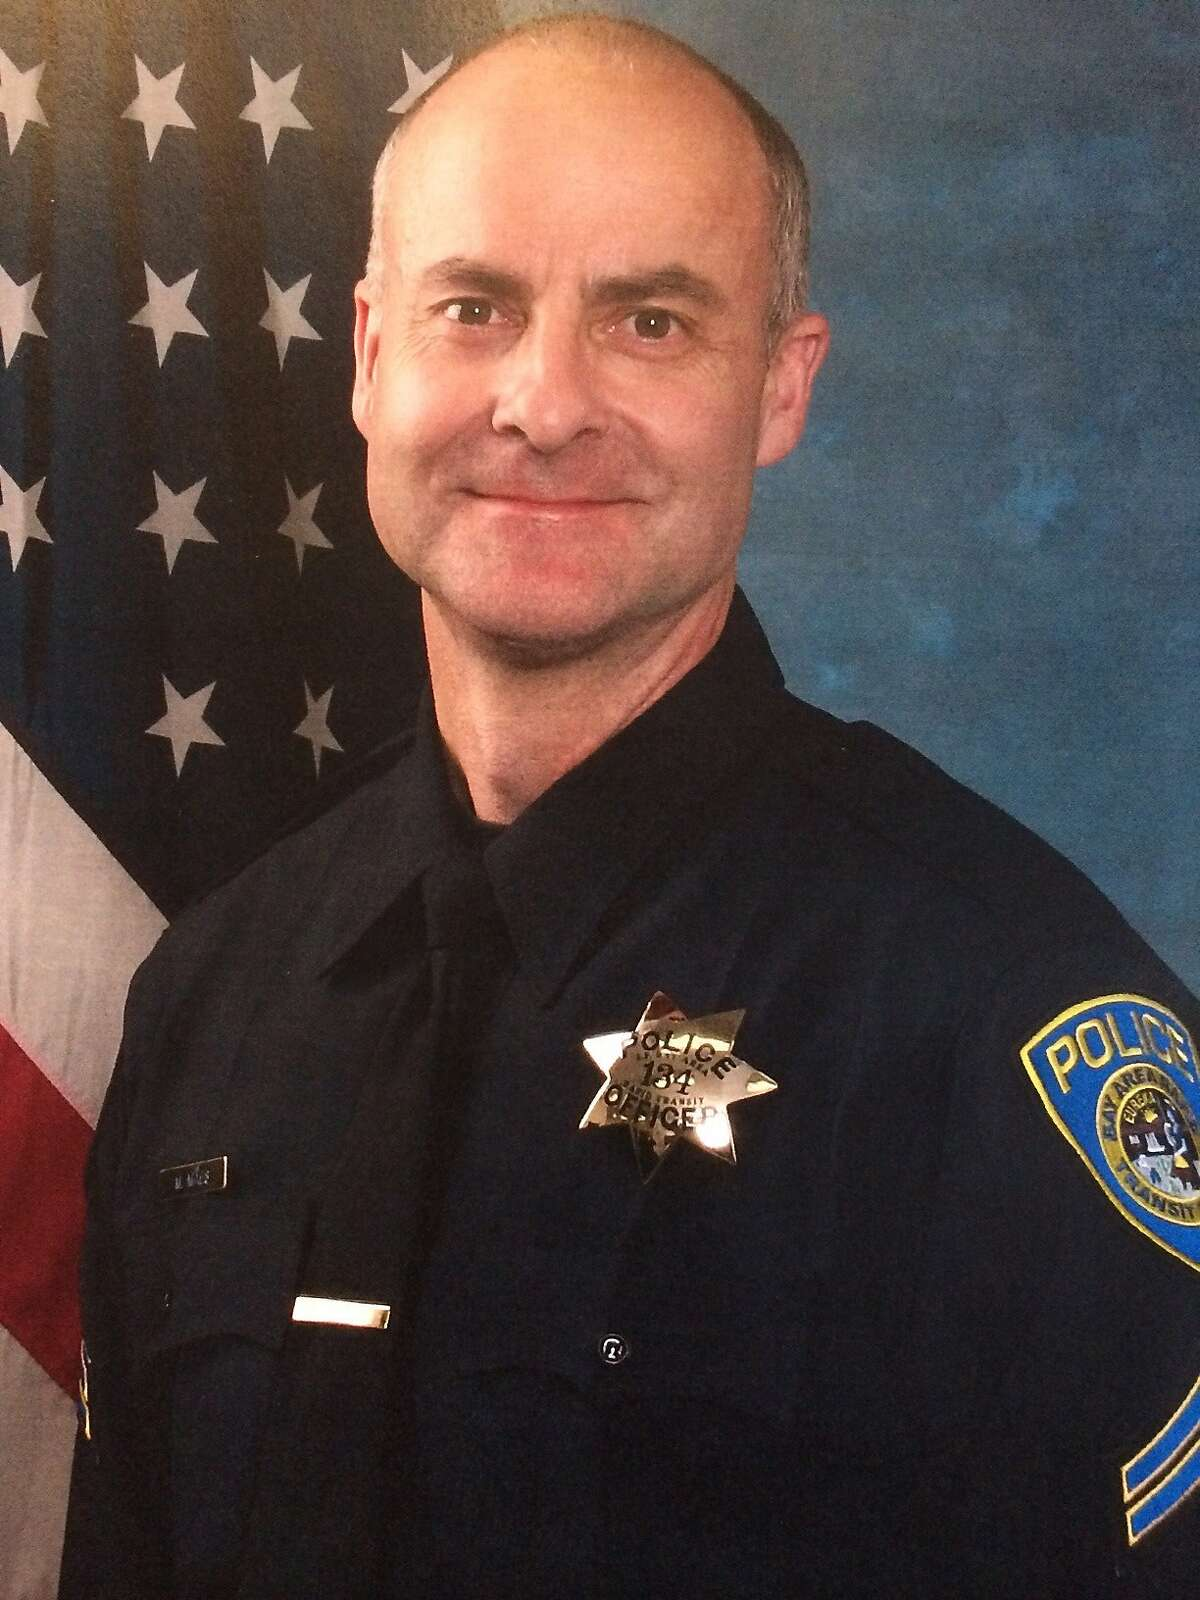 Official portrait of Detective Michael Maes, who shot and killed his BART police supervisor, Sgt. Tommy Smith on Jan. 21, 2014.